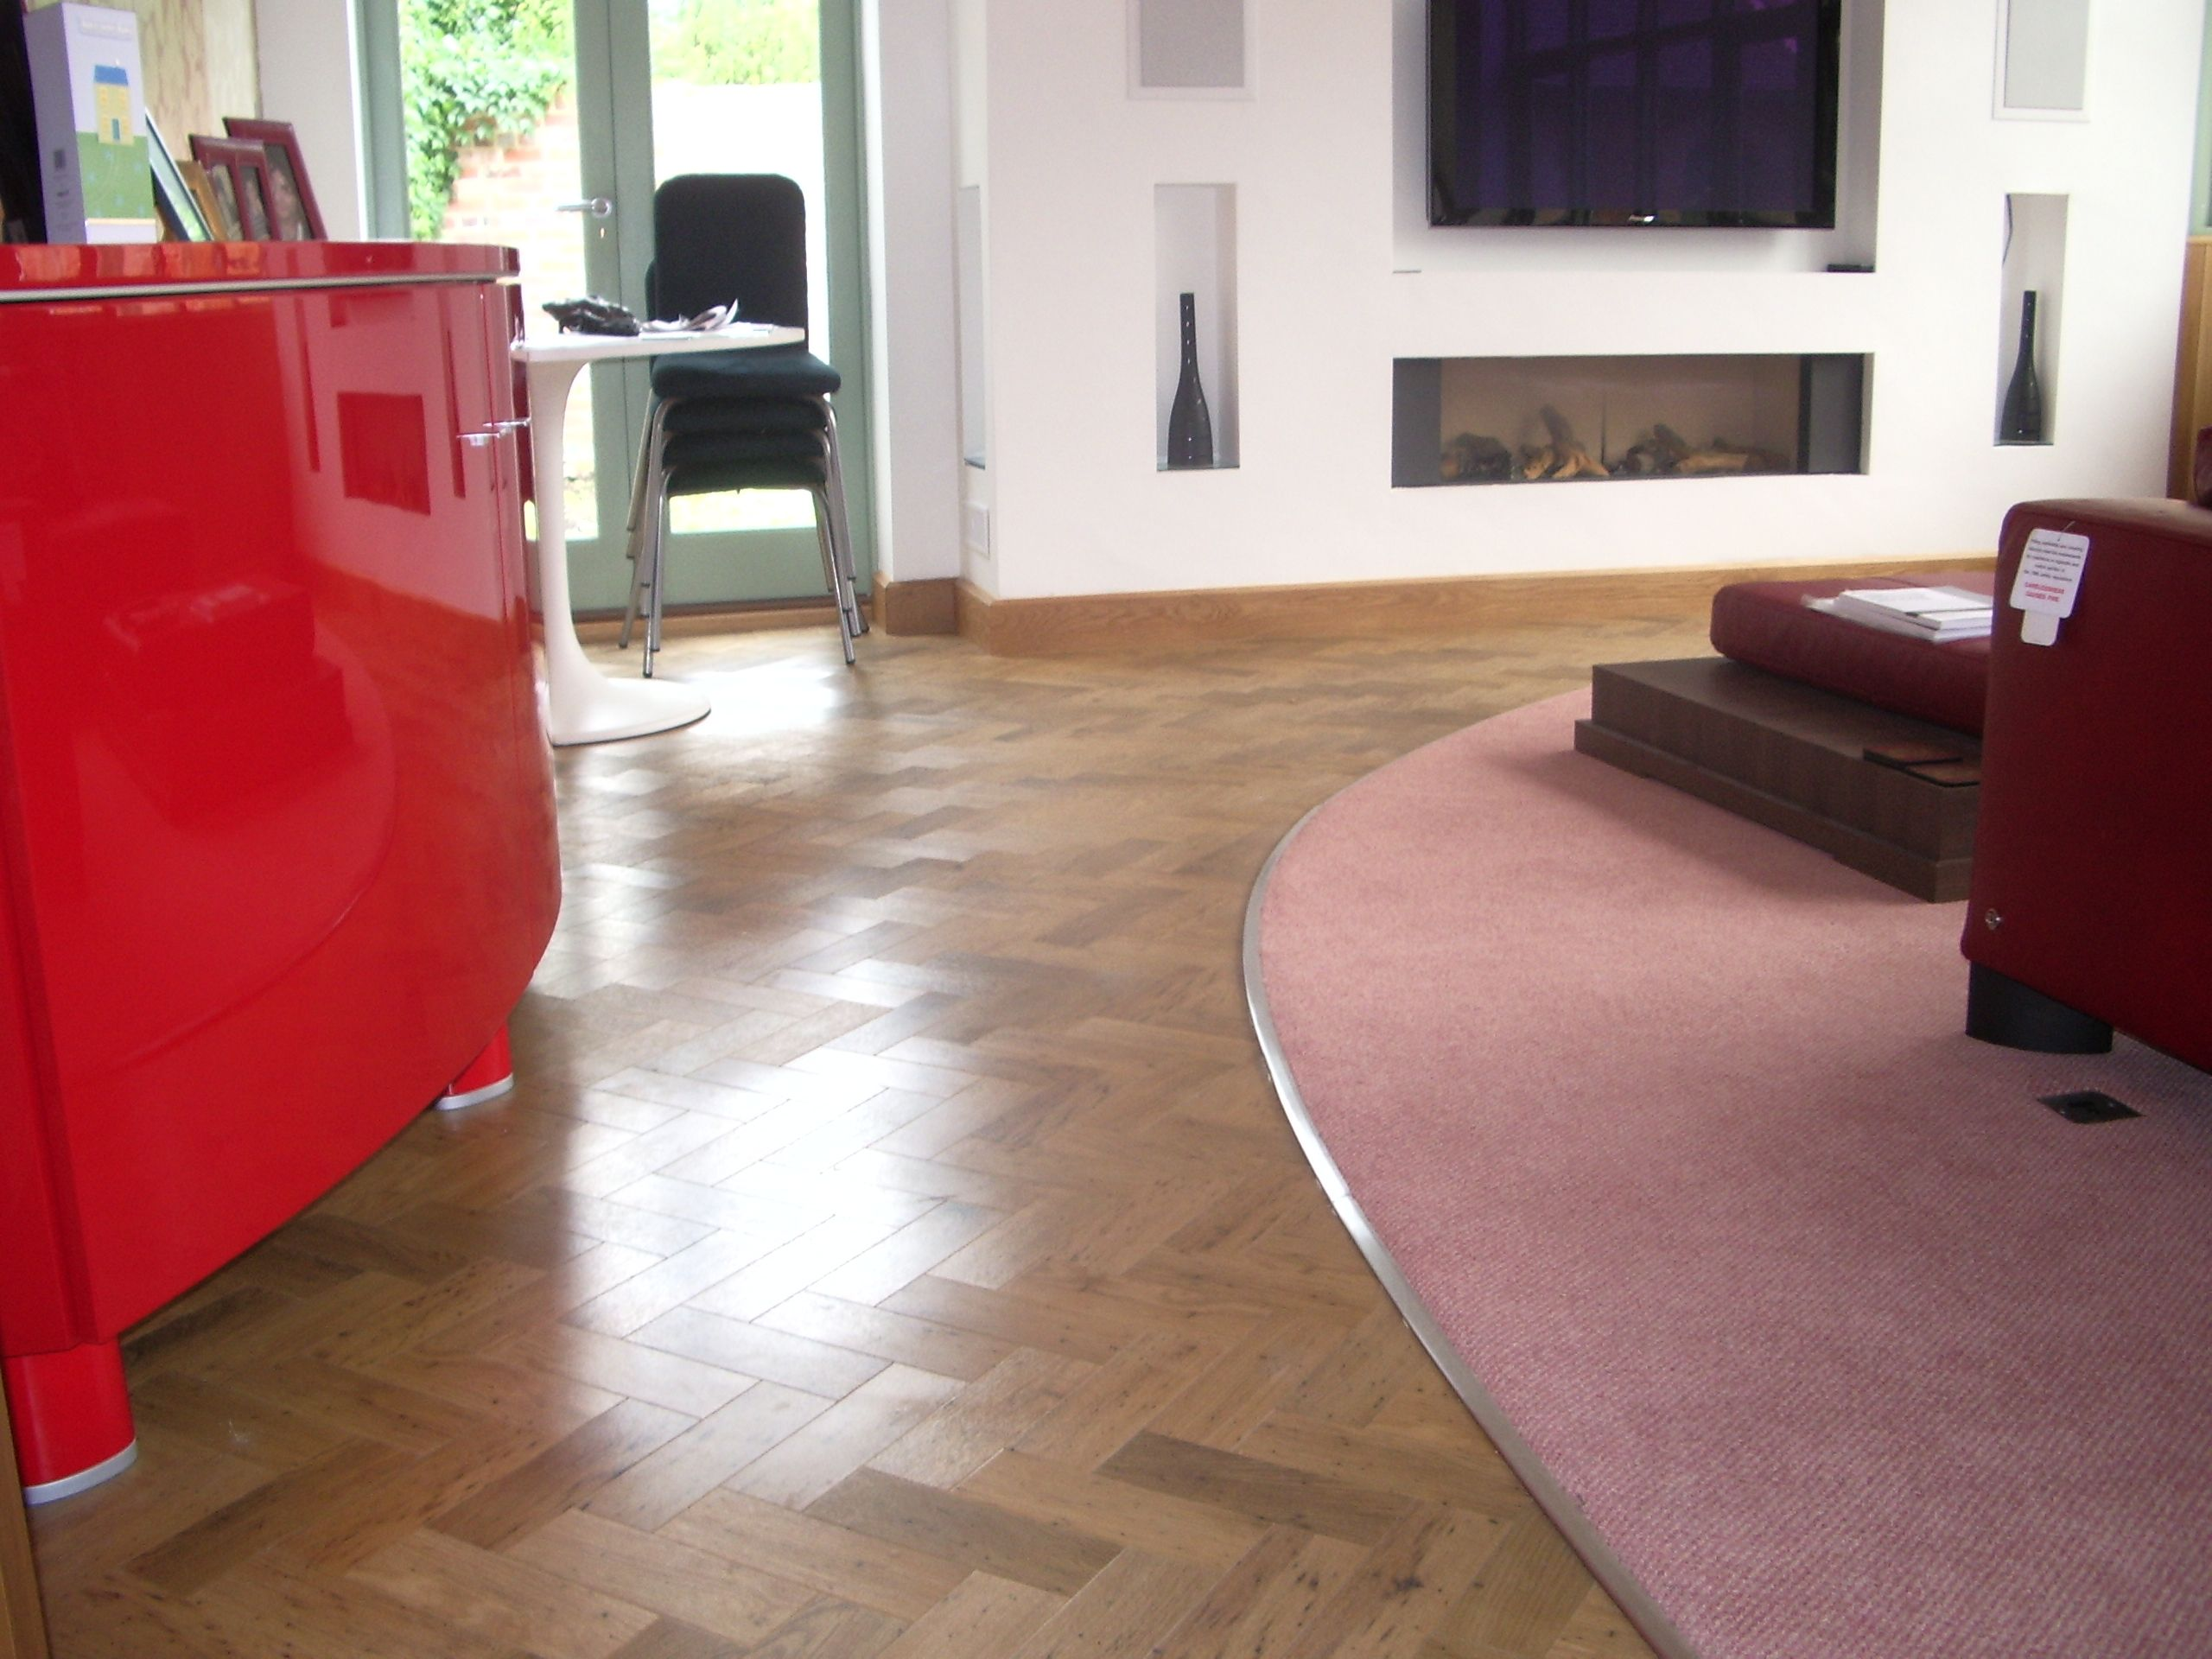 Amtico Wood Block Design With Carpet Curved Stainless